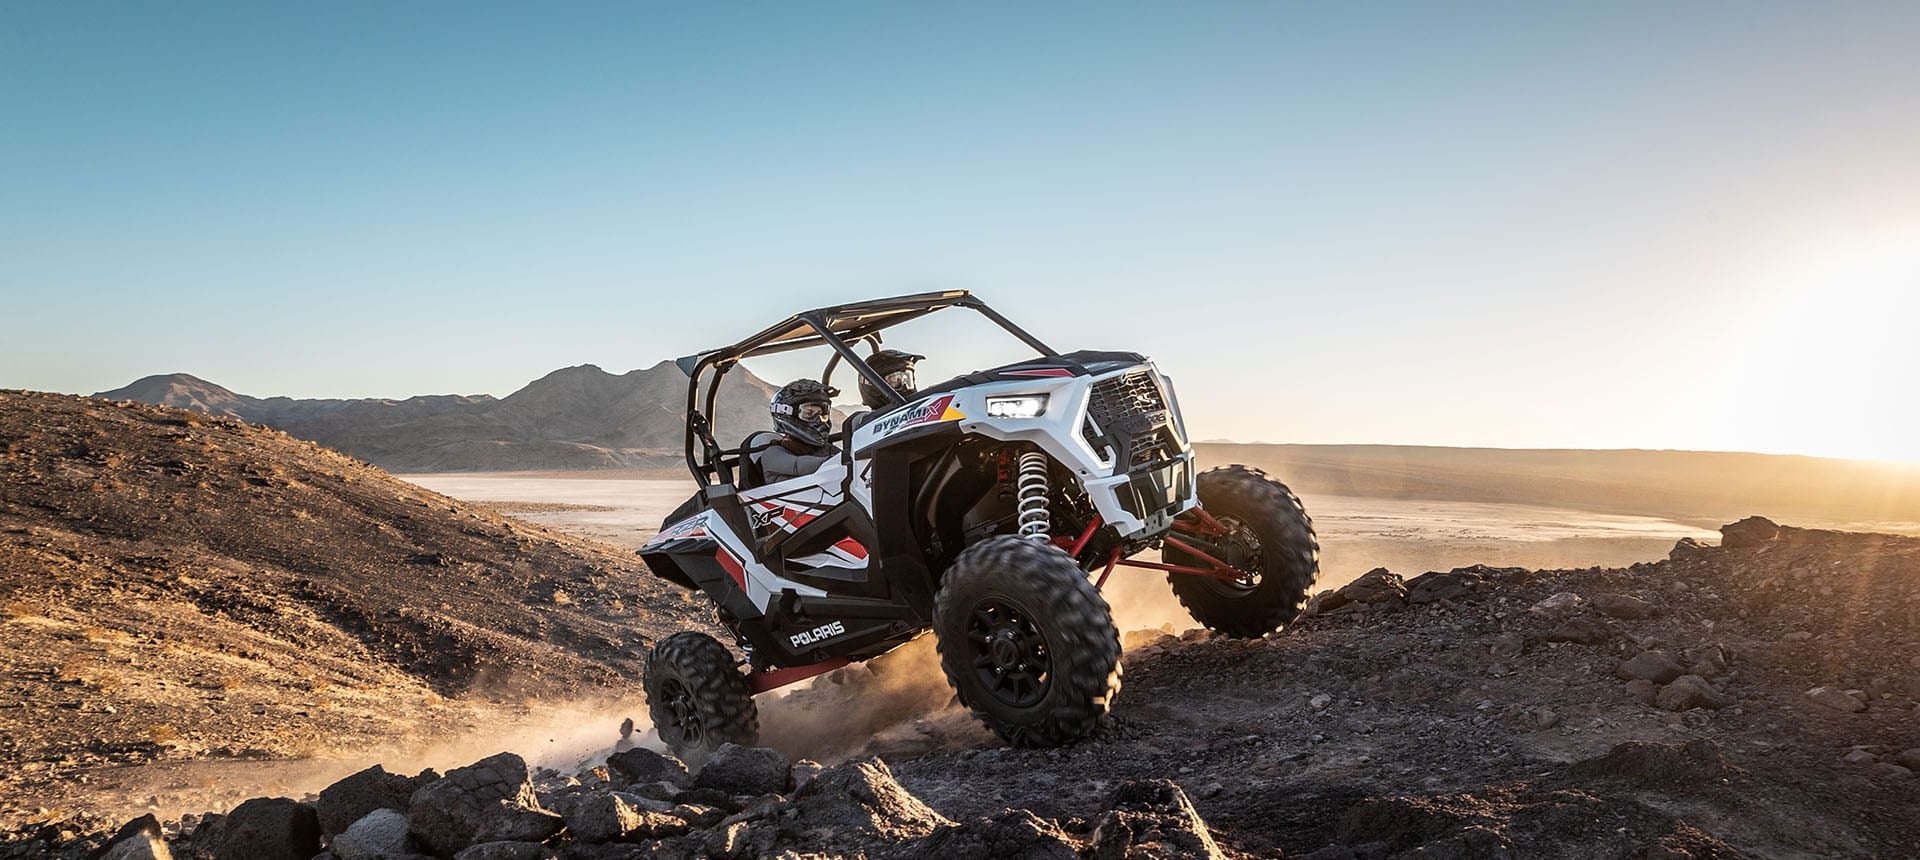 RZR XP 1000 EXTREME OFFROAD VEHICLE